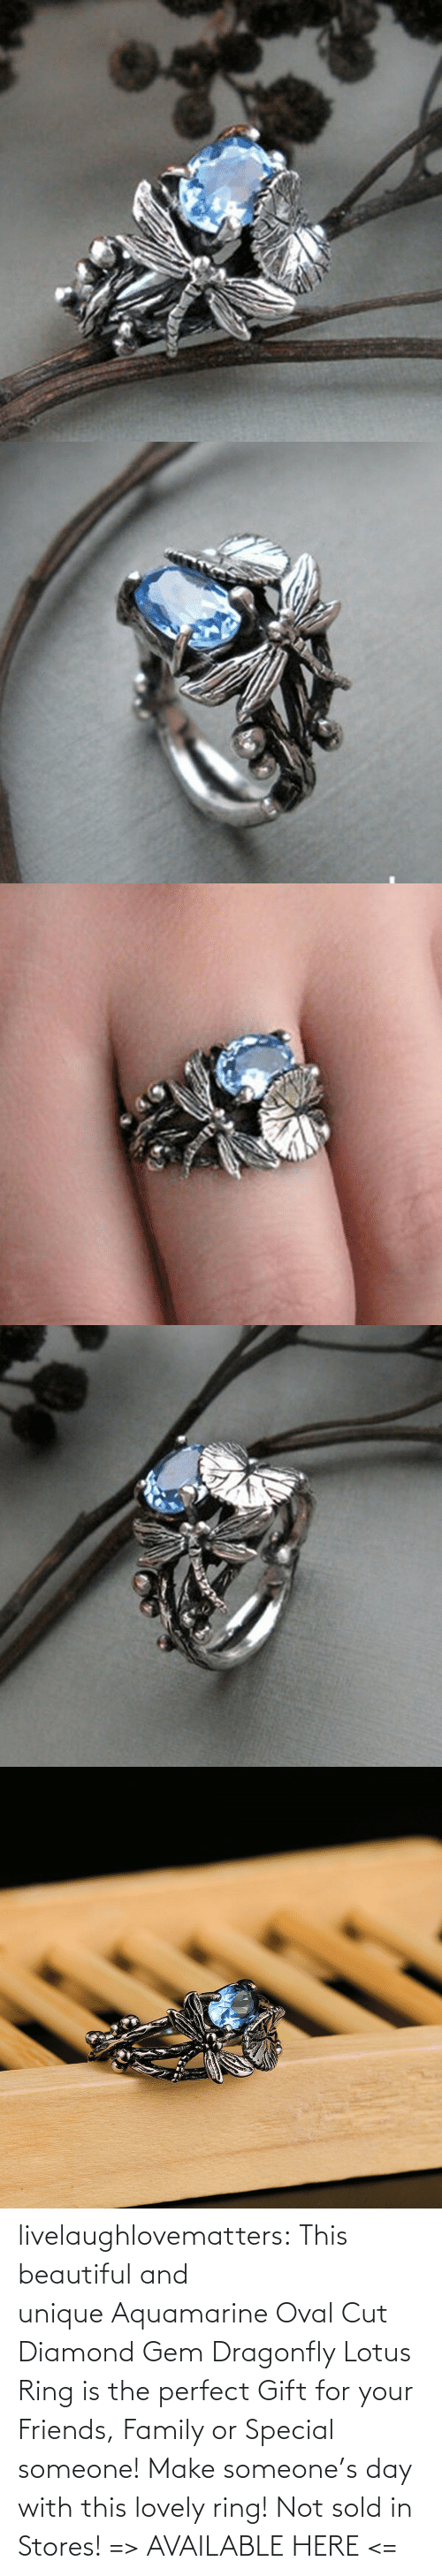 Lotus: livelaughlovematters: This beautiful and unique Aquamarine Oval Cut Diamond Gem Dragonfly Lotus Ring is the perfect Gift for your Friends, Family or Special someone! Make someone's day with this lovely ring! Not sold in Stores! => AVAILABLE HERE <=